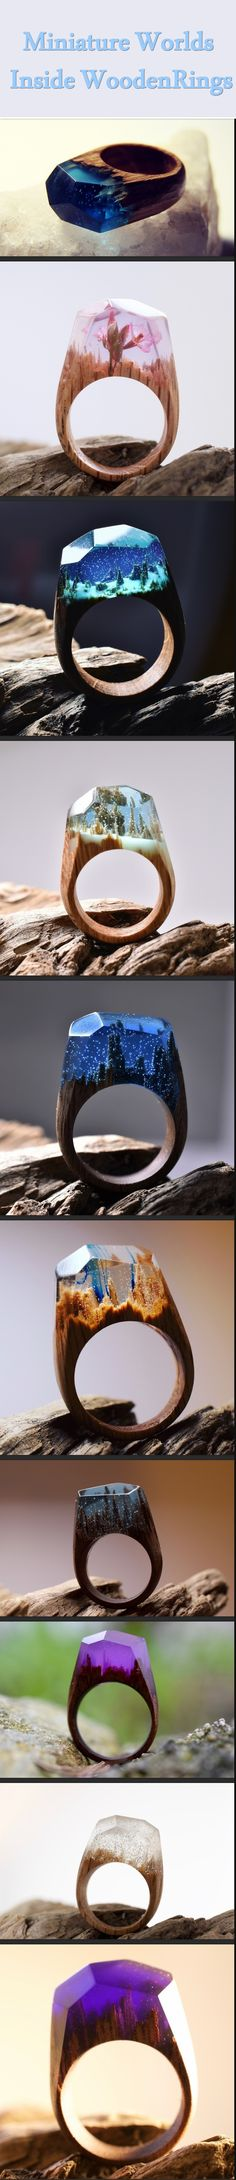 Unlike other jewelry makers, Canadian Secret Wood loves to bring more meaning to the ring designs. They craft a unique miniature world in  wooden #rings. These beautiful pieces are handcrafted from fresh wood, #jewelry resin, and beeswax. Those rings are perfect for #wedding, anniversary and other important occasions you wan to remember for a life time.